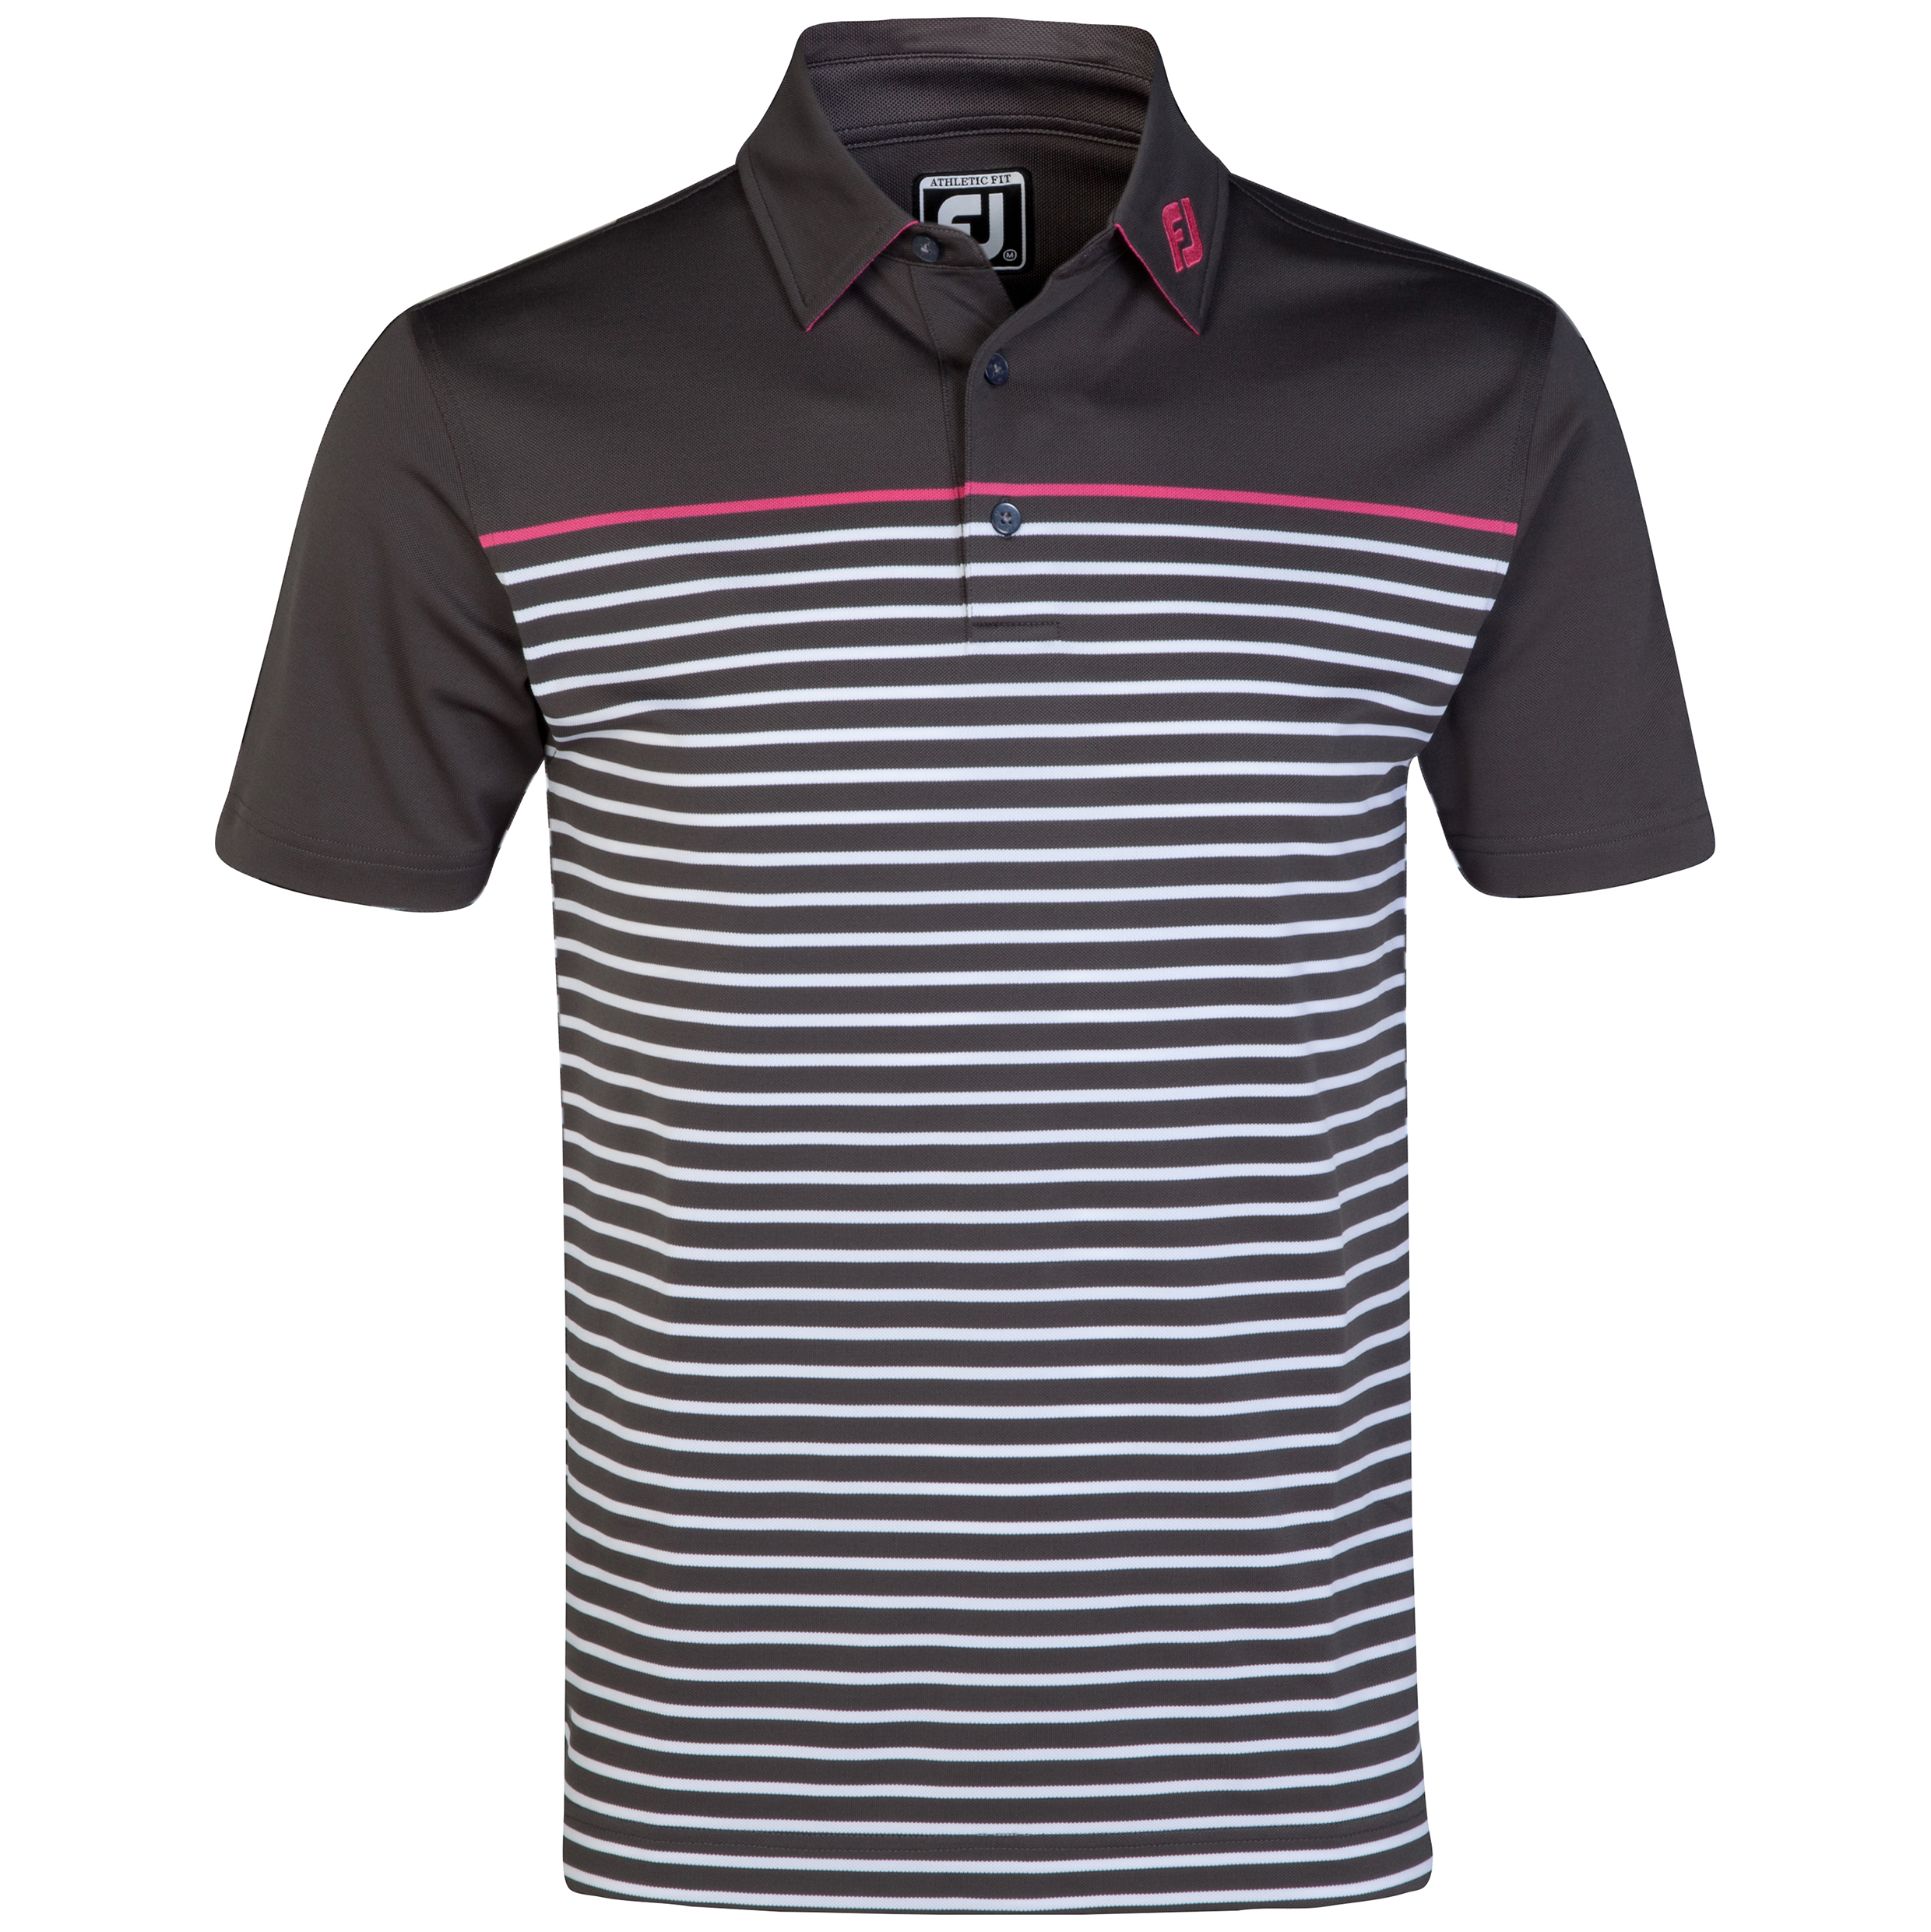 The 2014 Ryder Cup FootJoy Pique Chest Stripe Polo - Charcoal/White